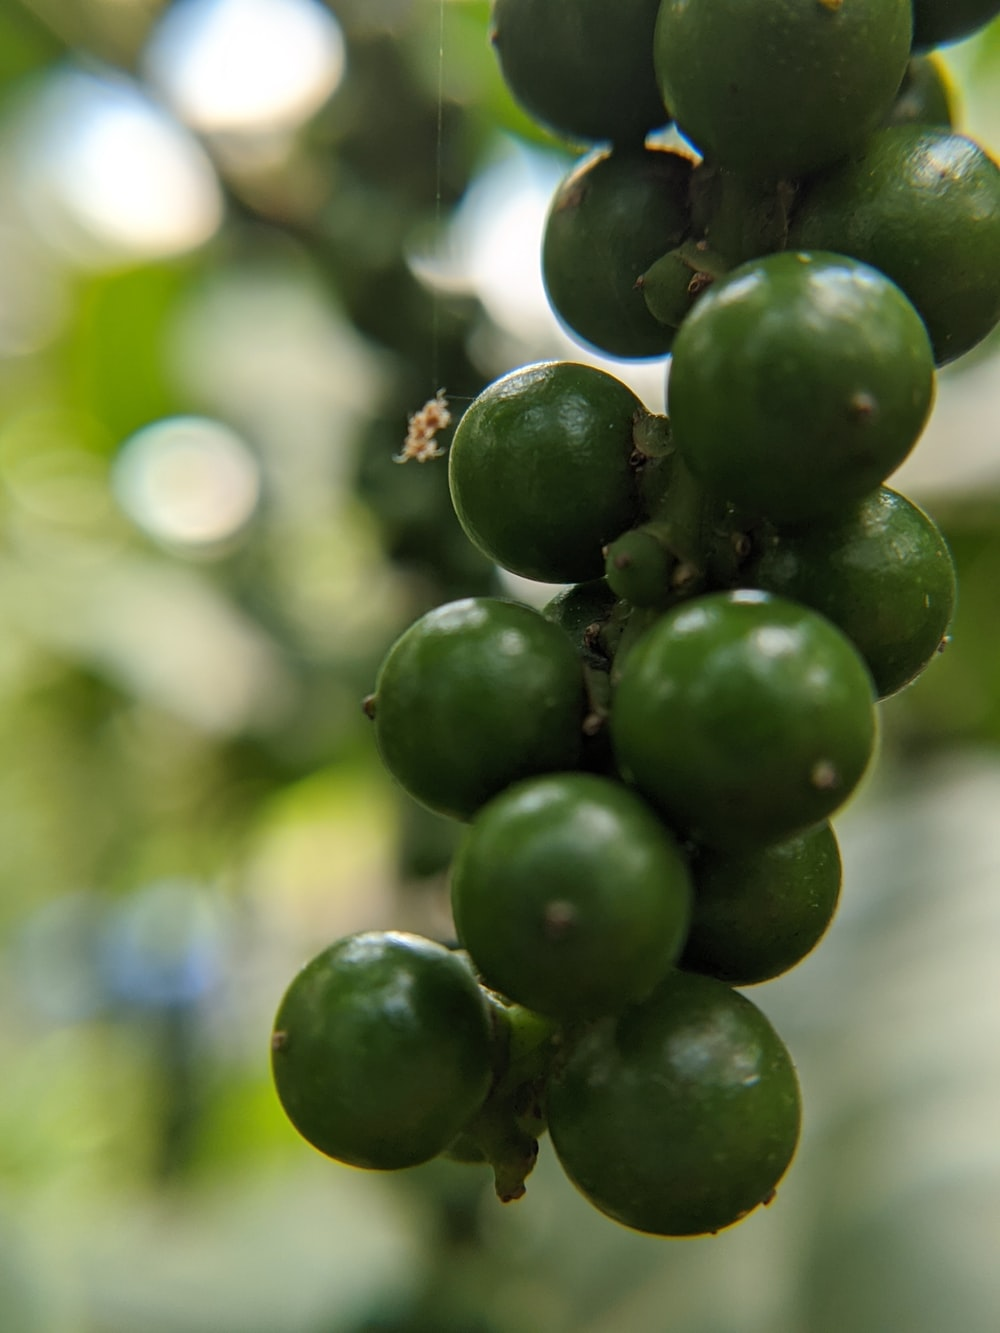 selective focus photography of green fruits